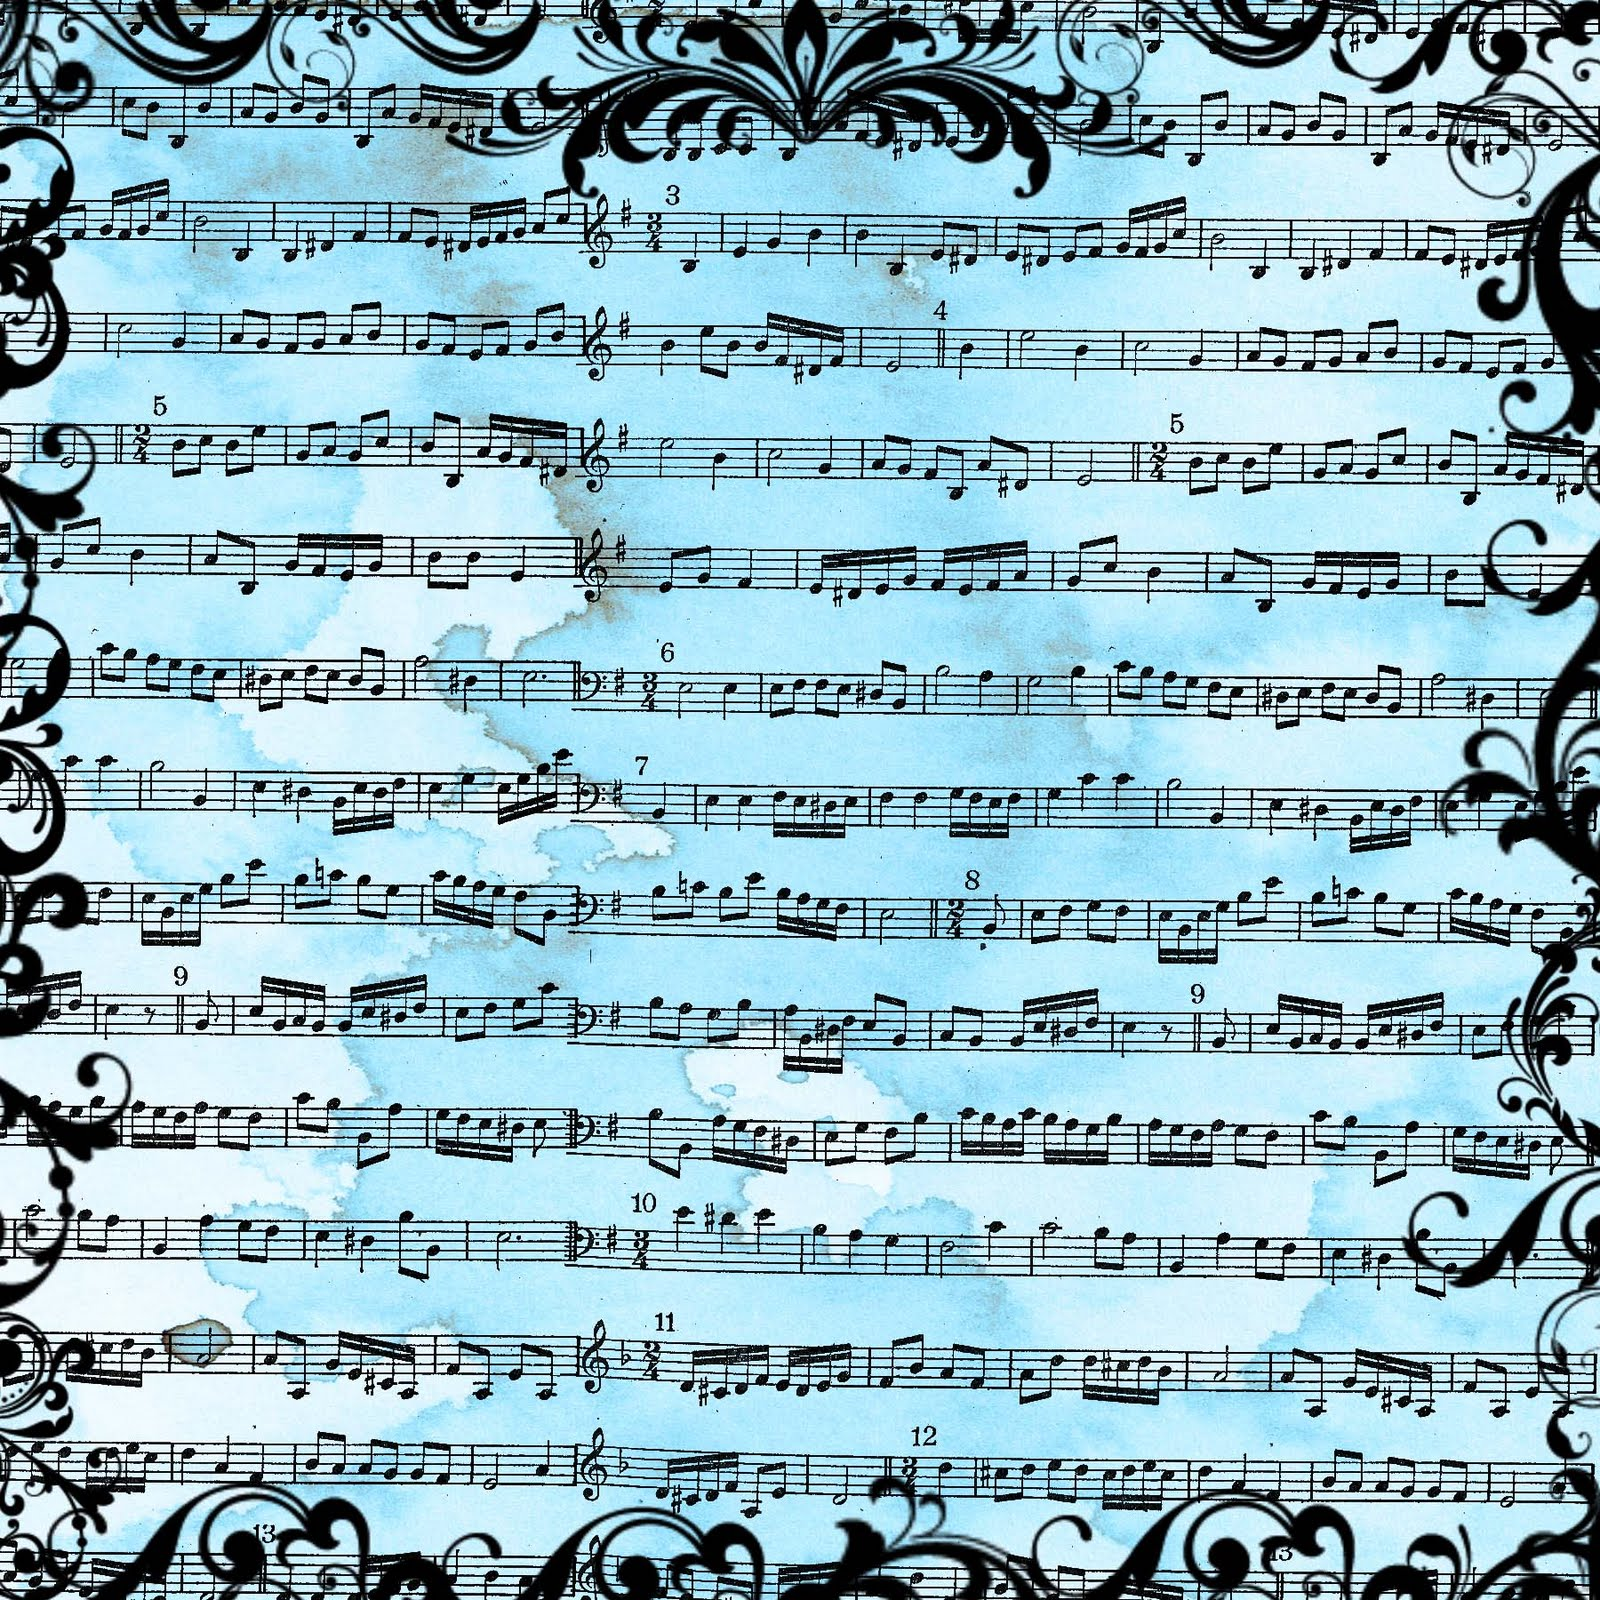 Digital Scrapbook Paper Vintage Sheet Music Free